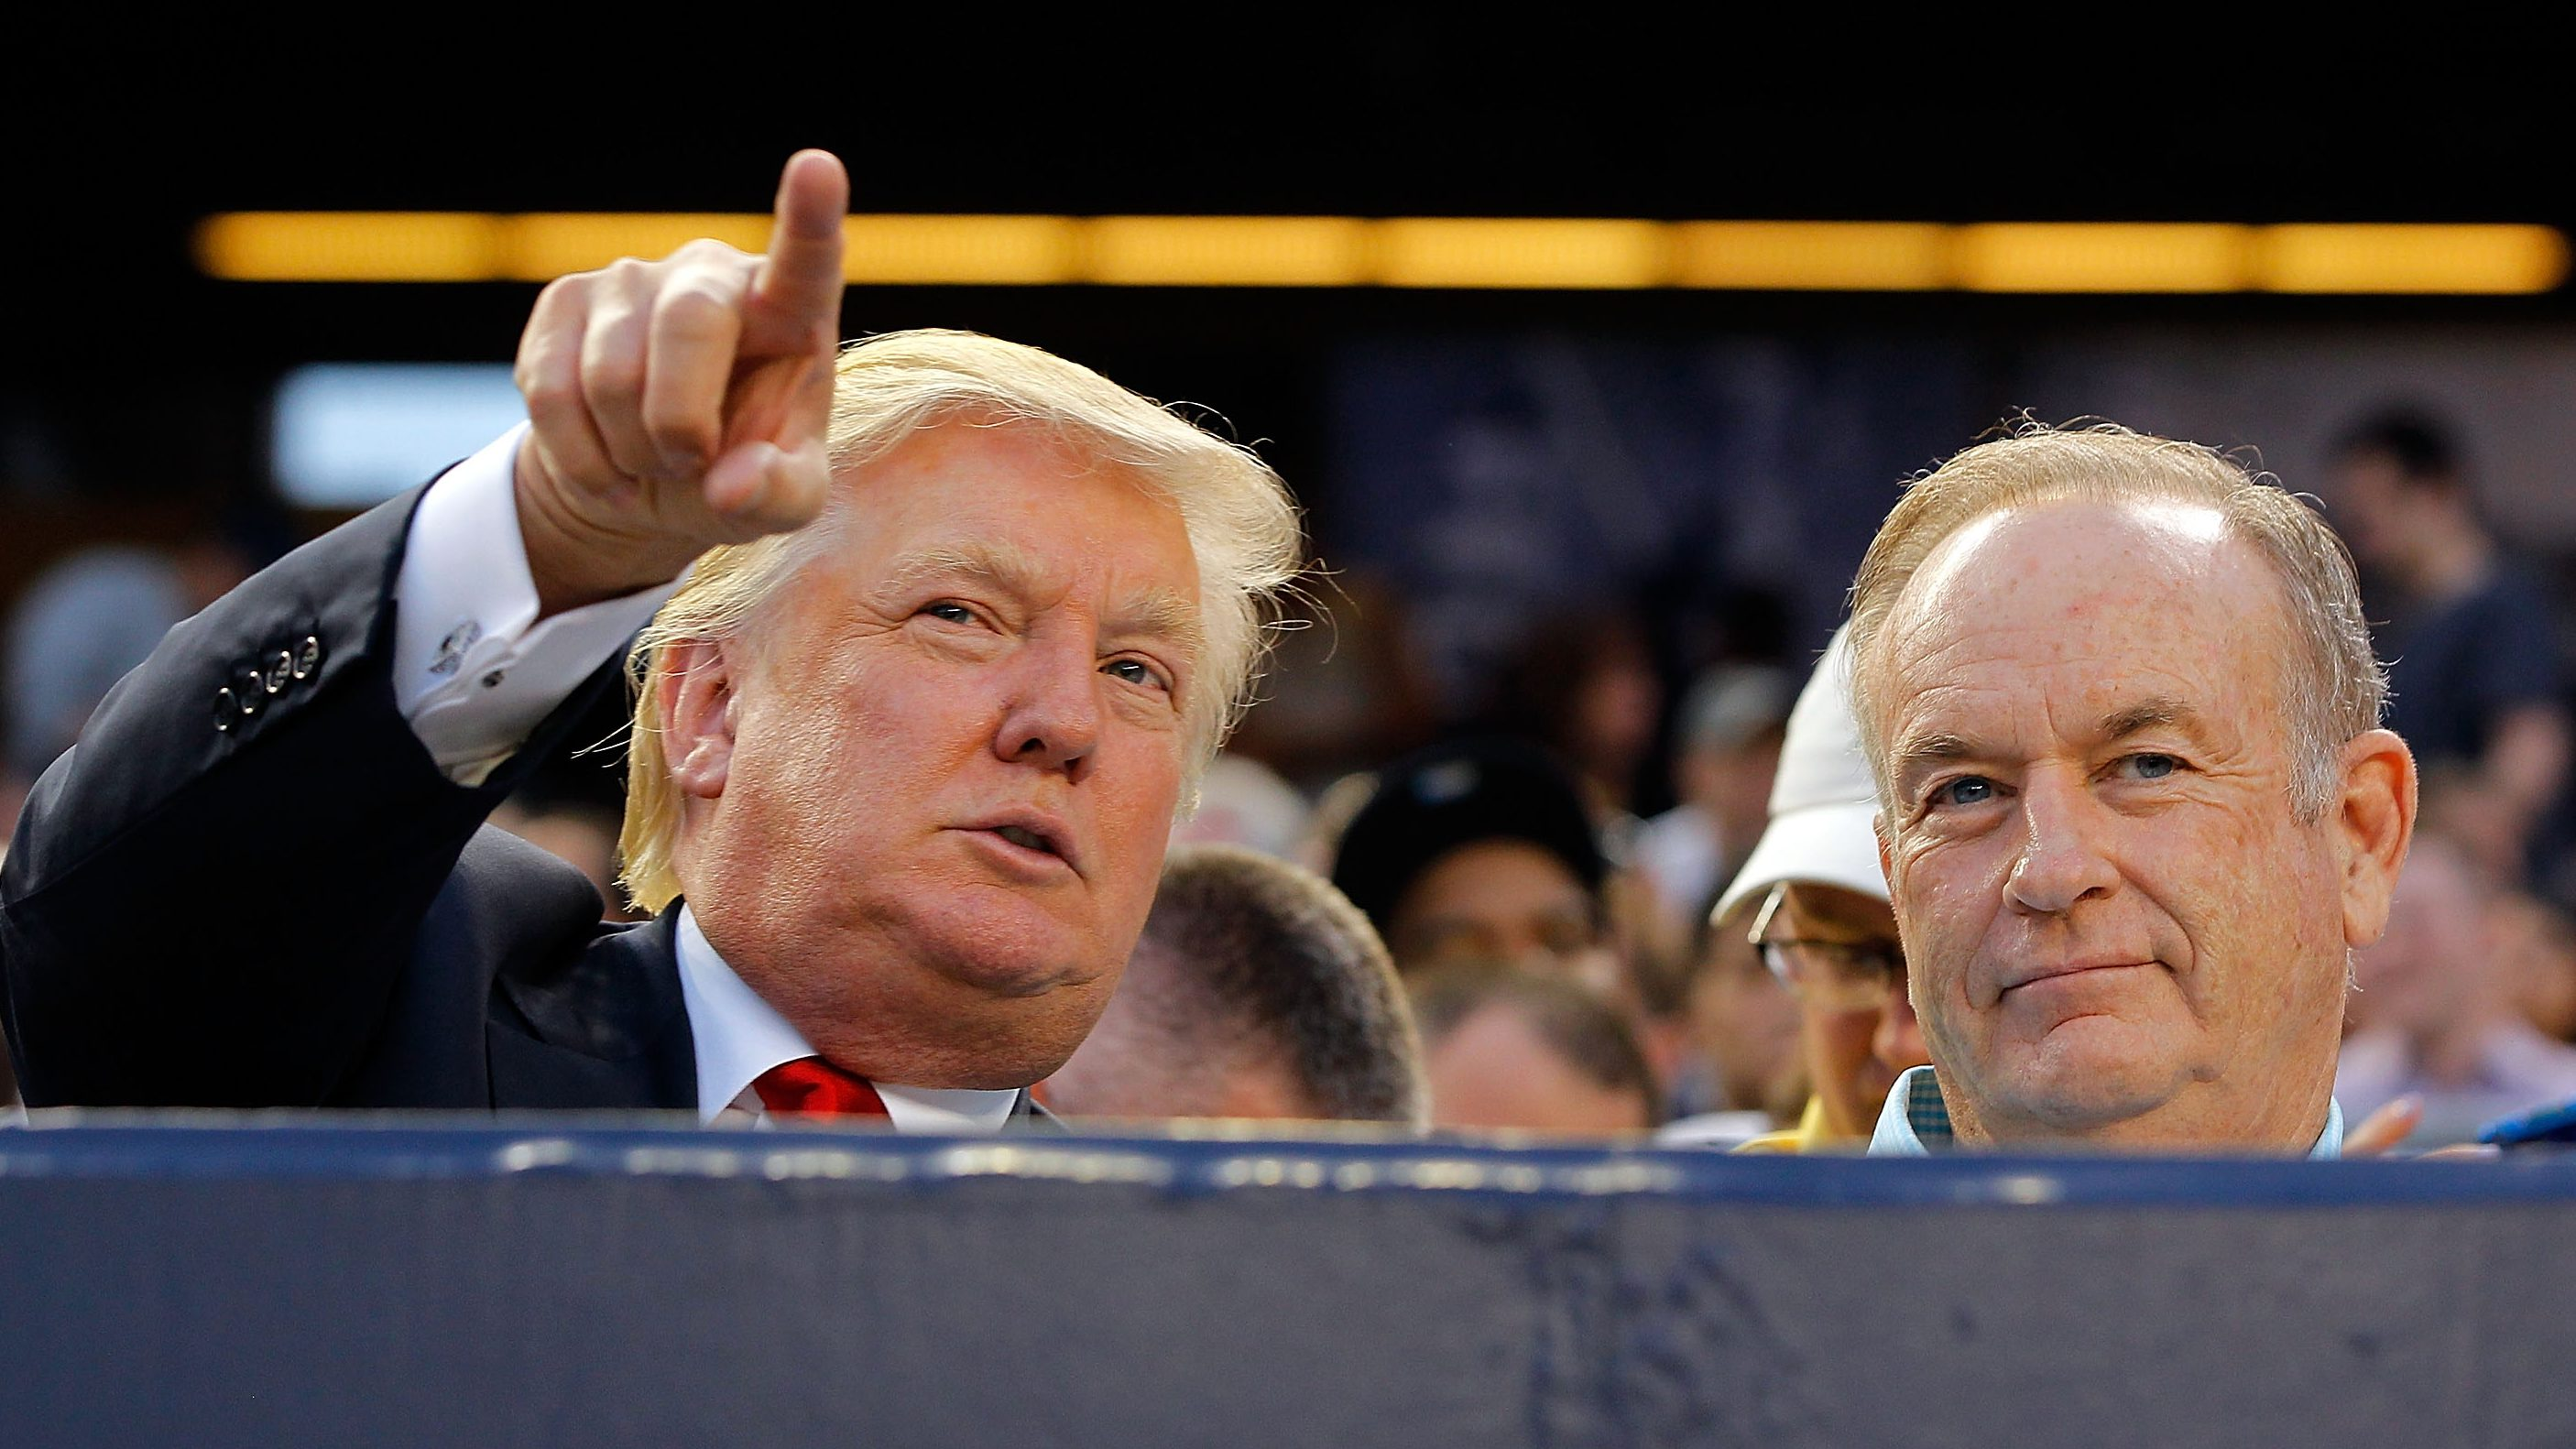 Donald Trump and Bill O'Reilly pictured together at a Yankees baseball game. (Getty)